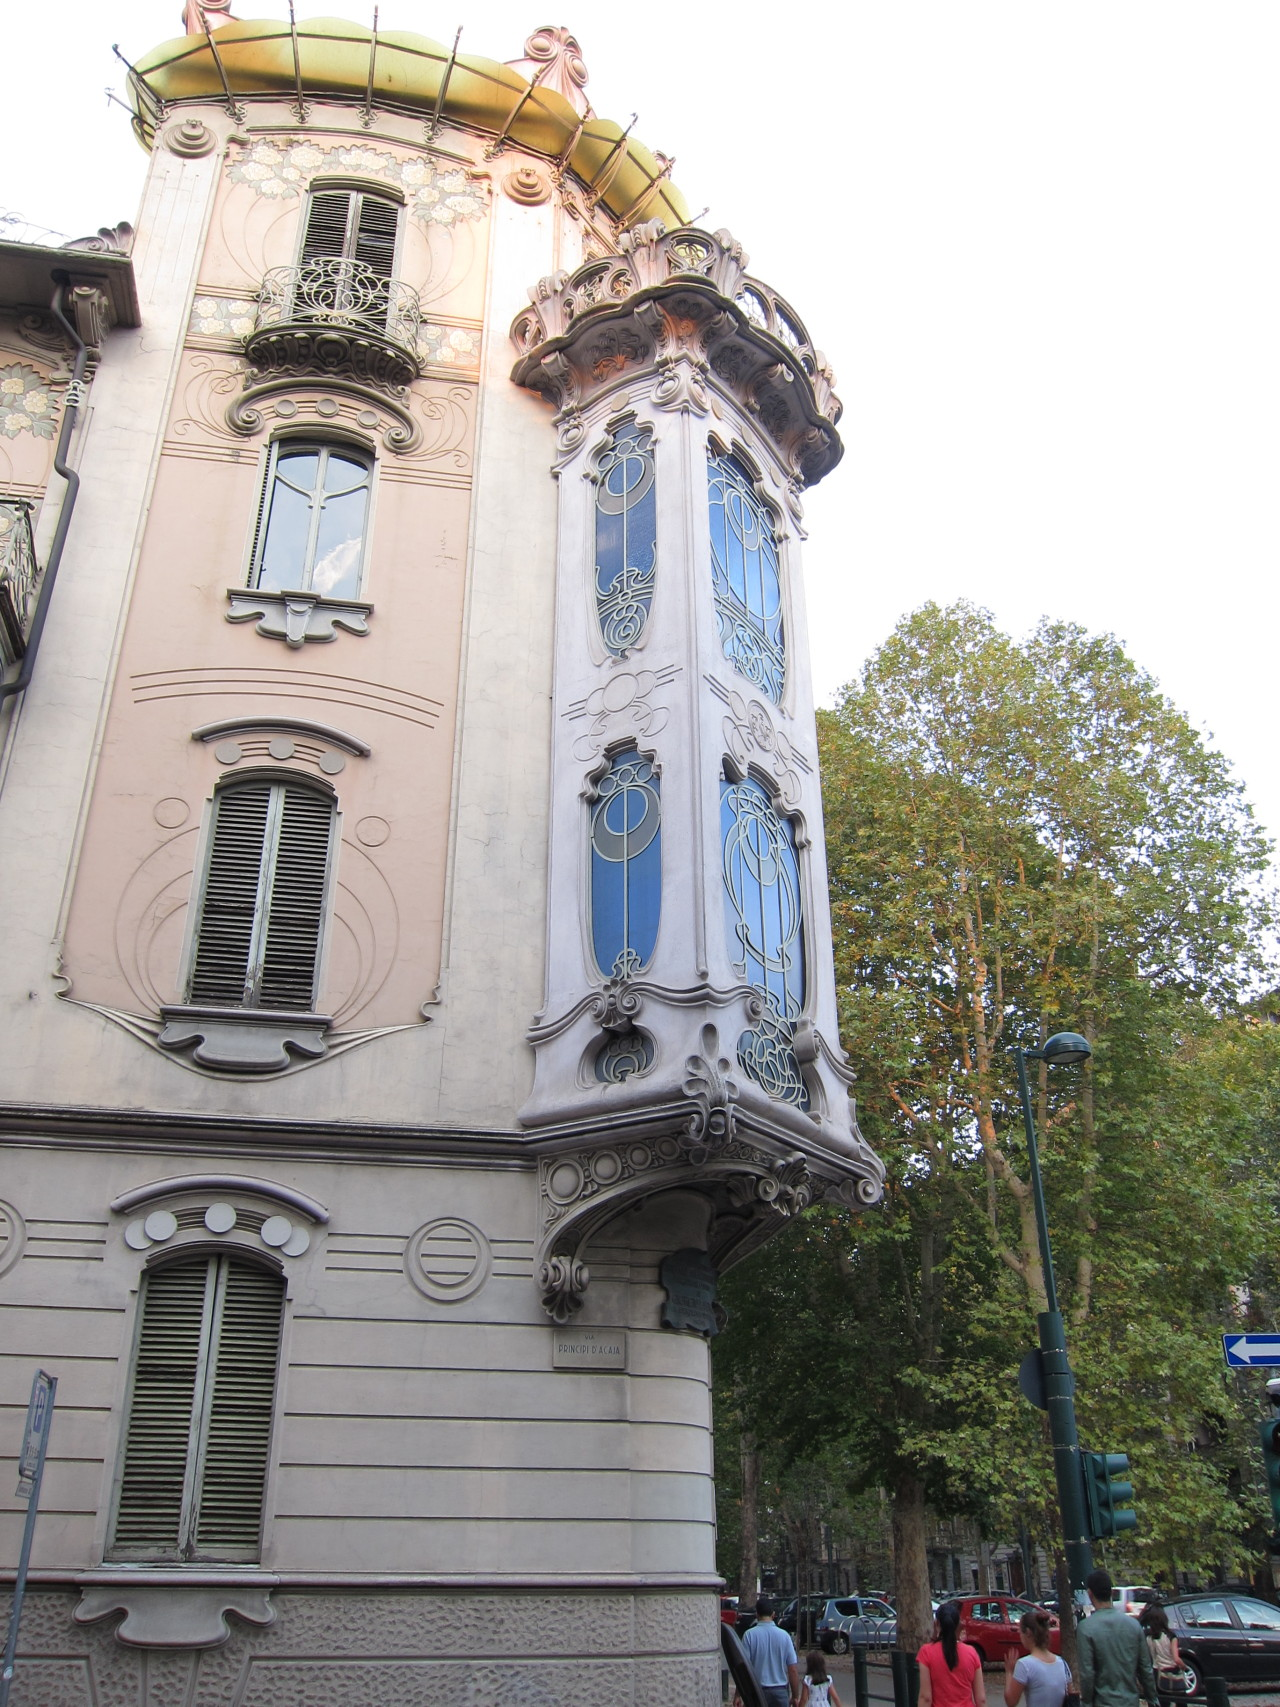 Art Nouveau (Stile Floreale) window bay in Turin, Italy.